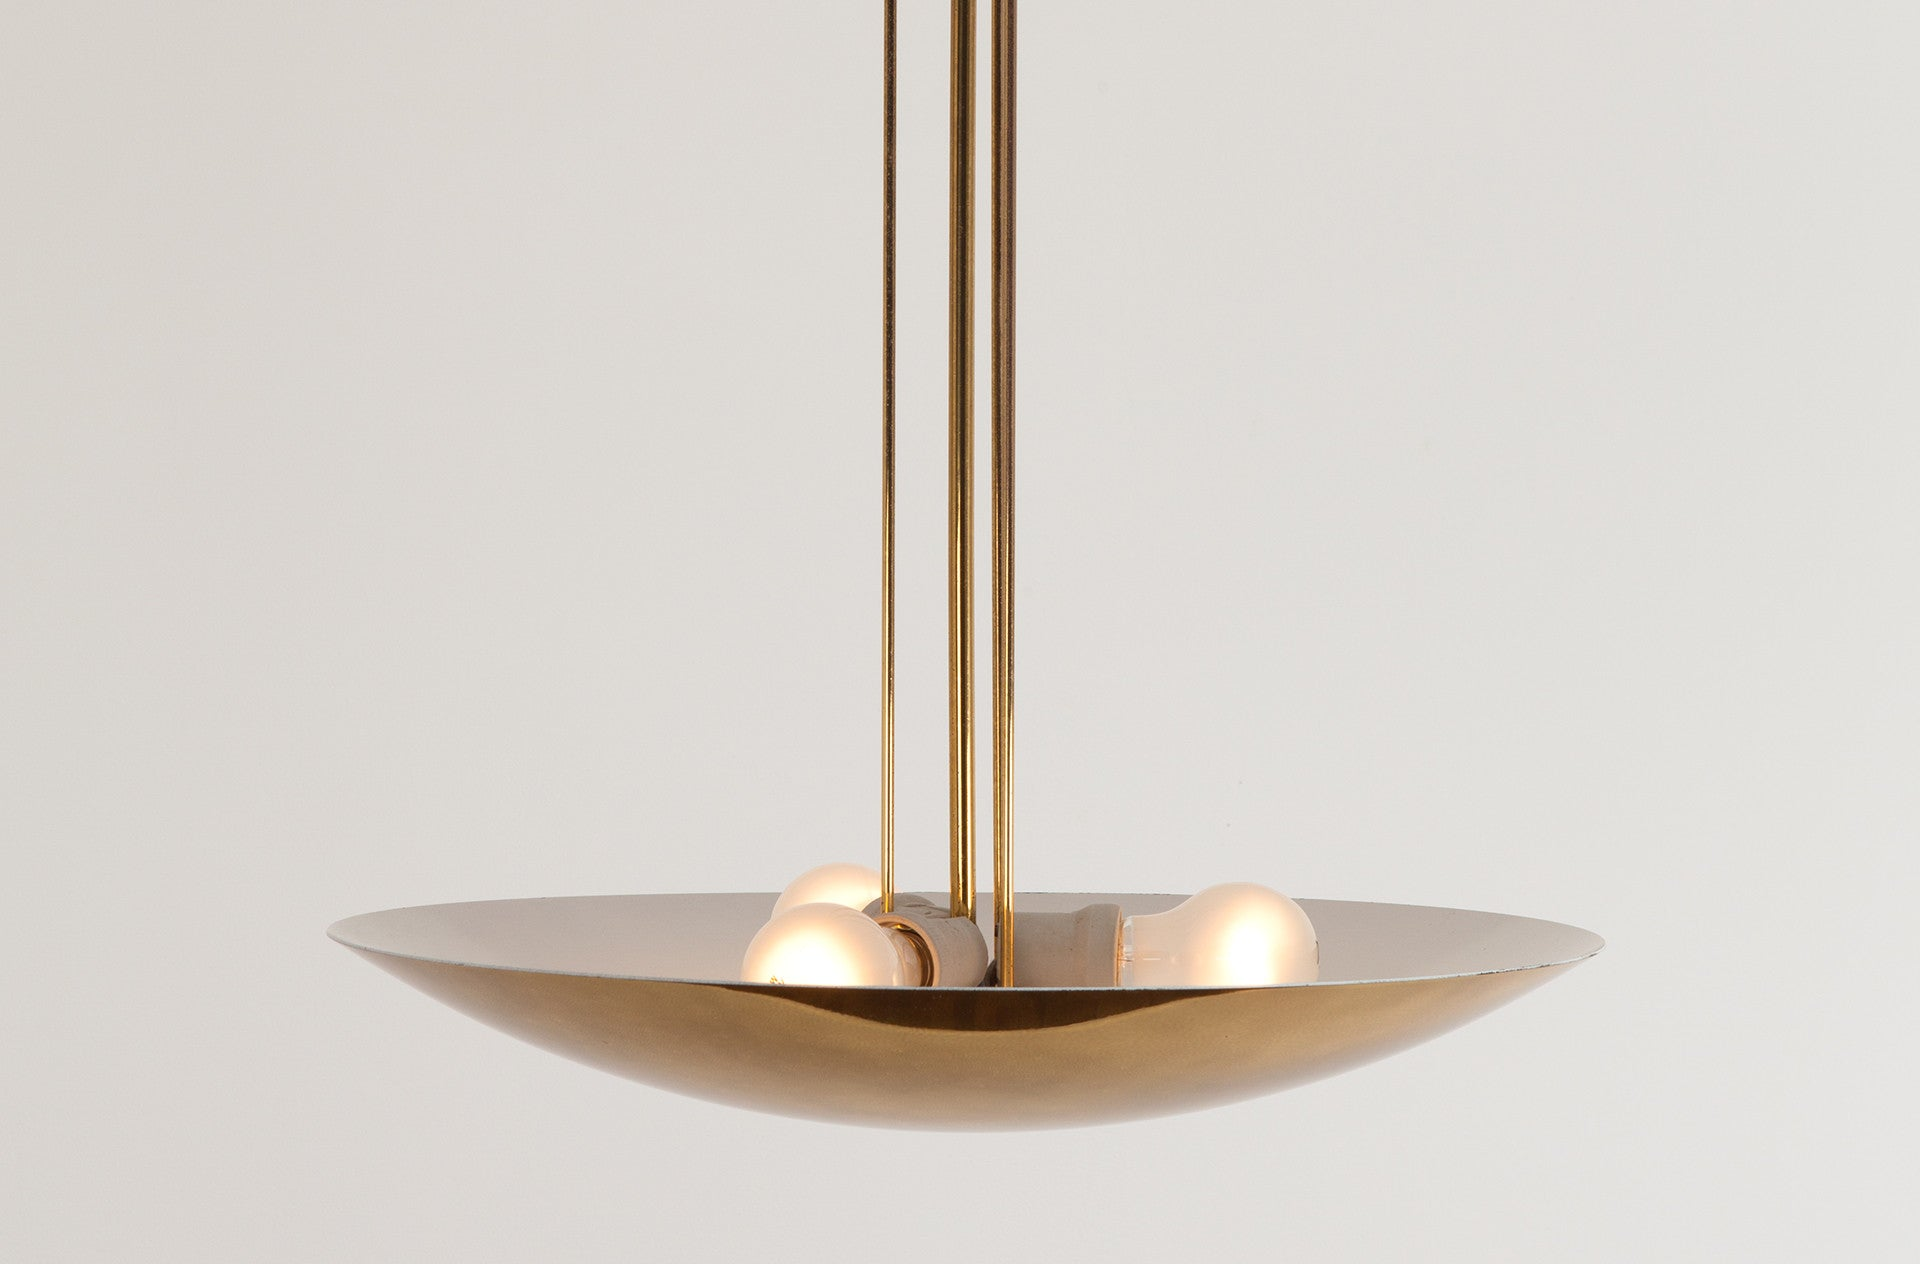 Brass chandelier by Walter Orleth for Kalmar